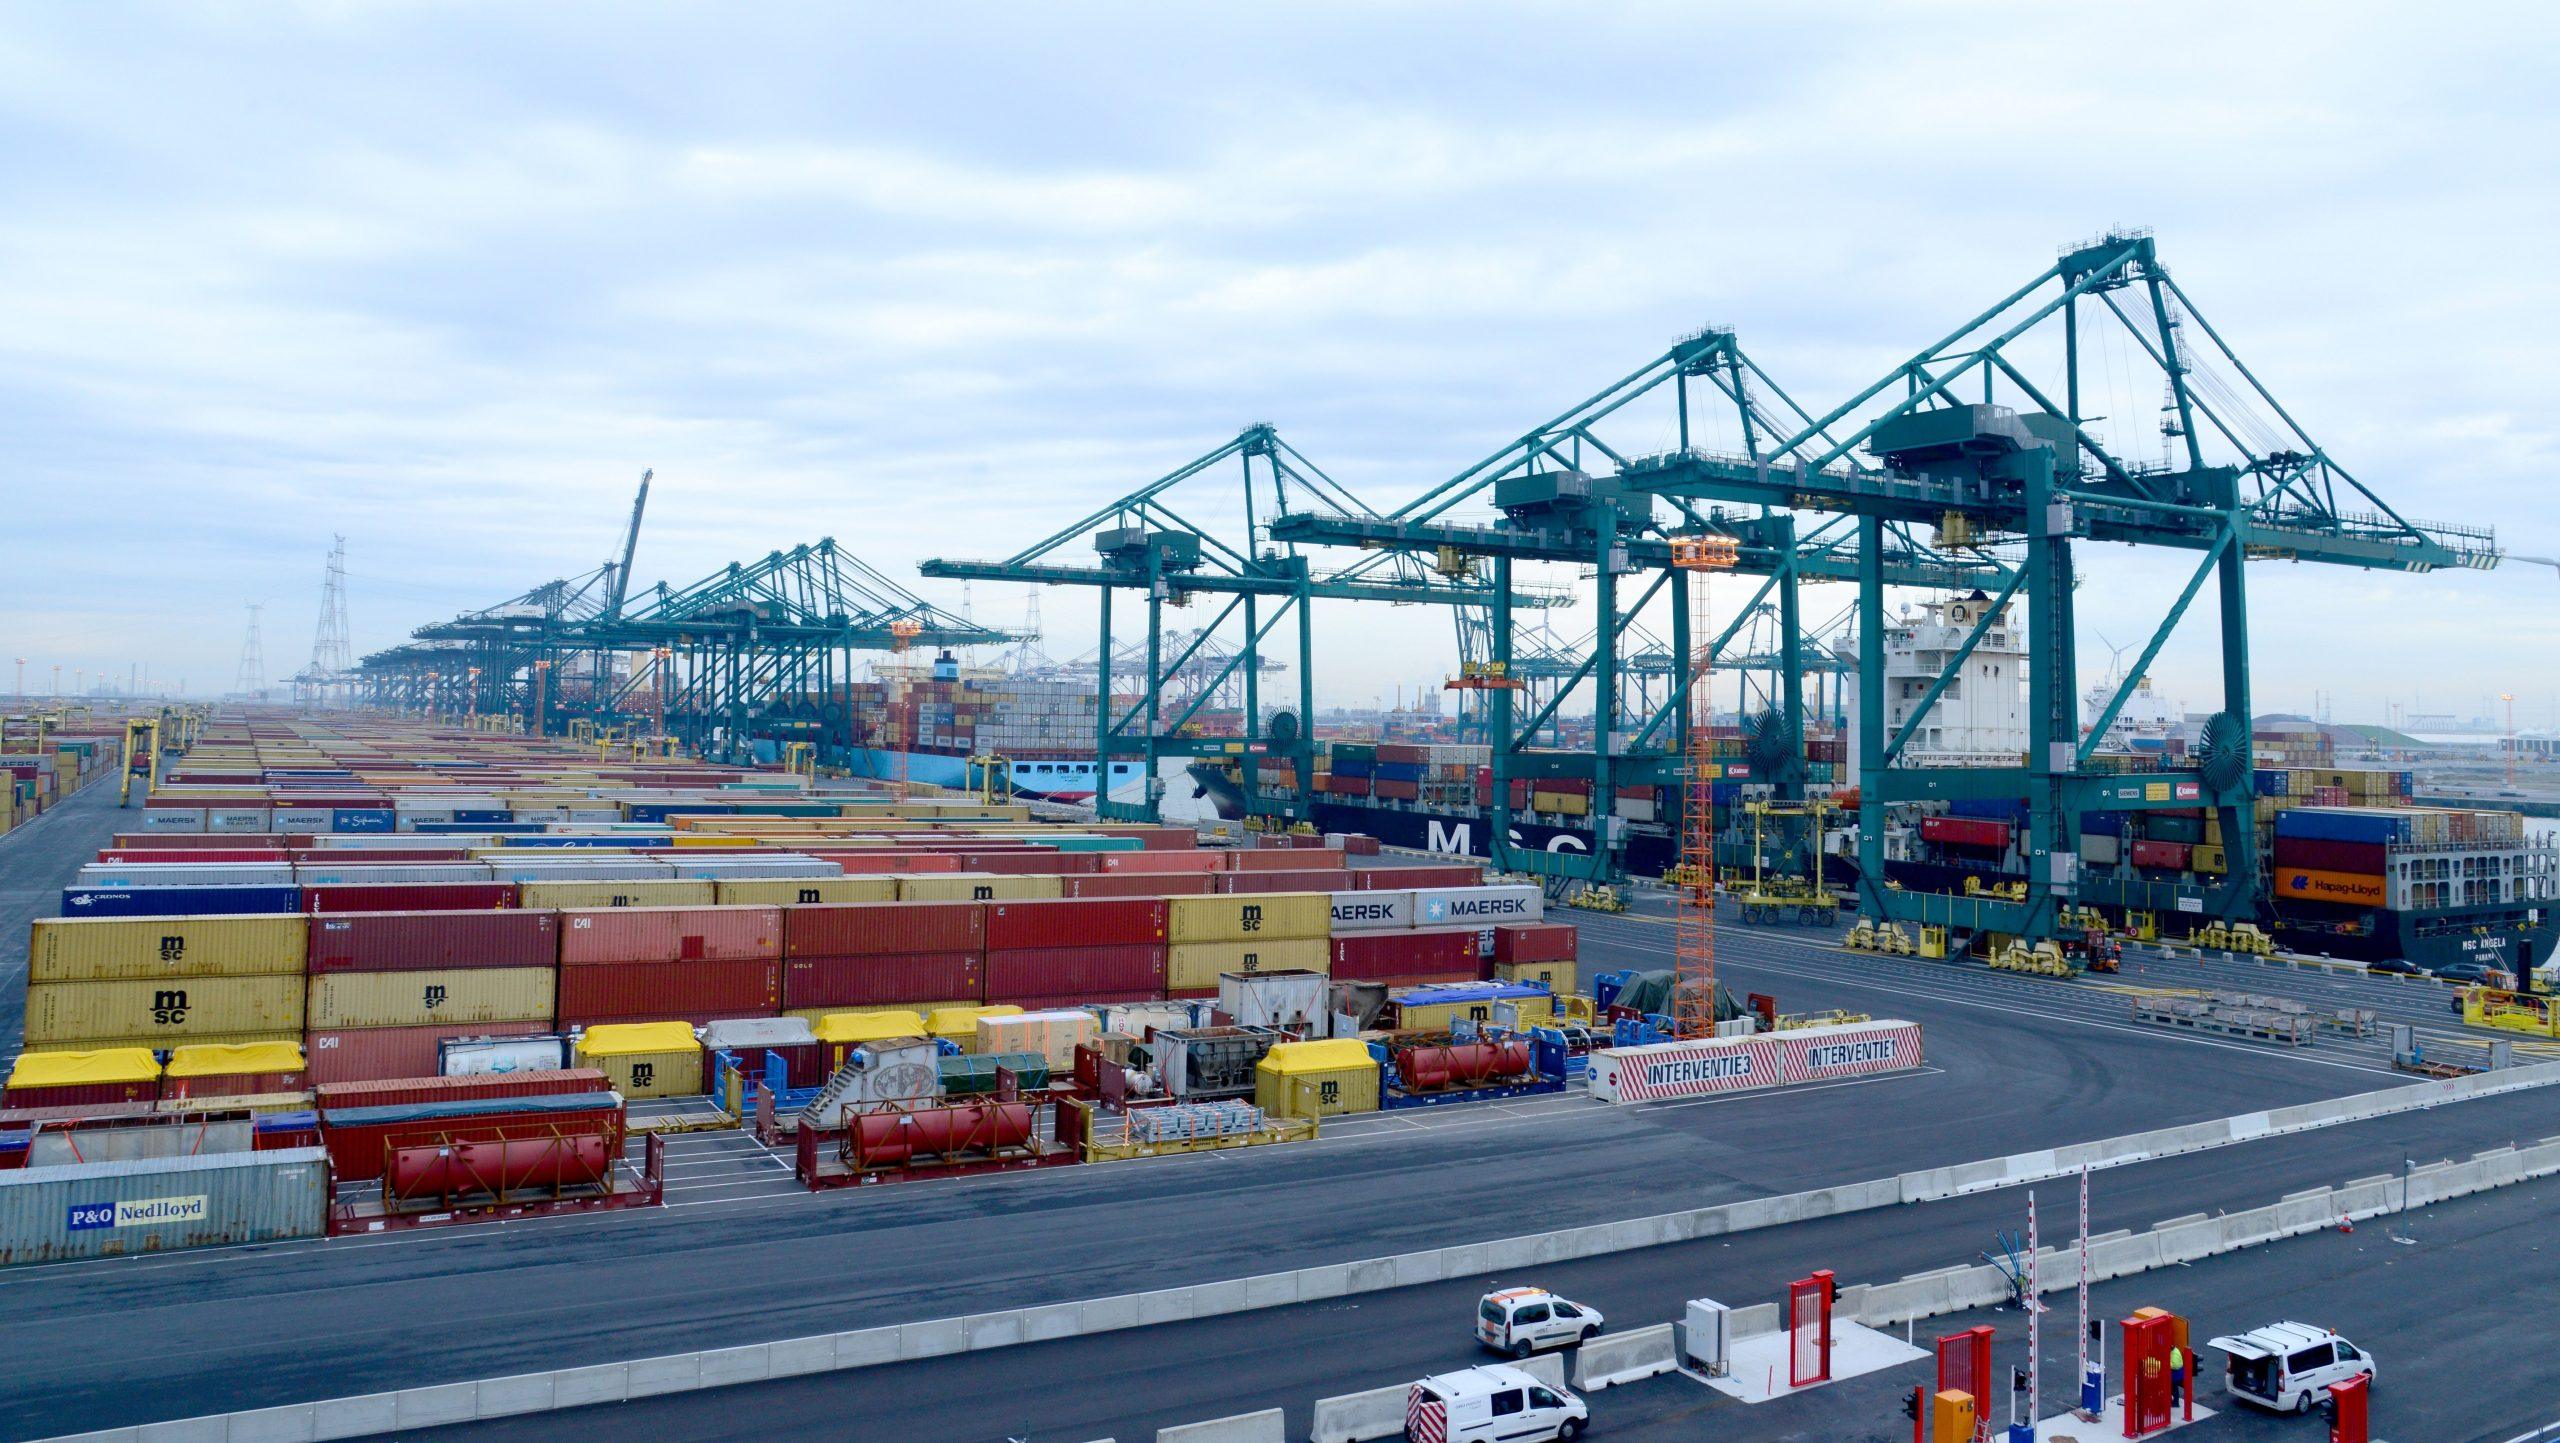 For the first time, the Port of Antwerp's shipping container volume has risen above 10 million TEU